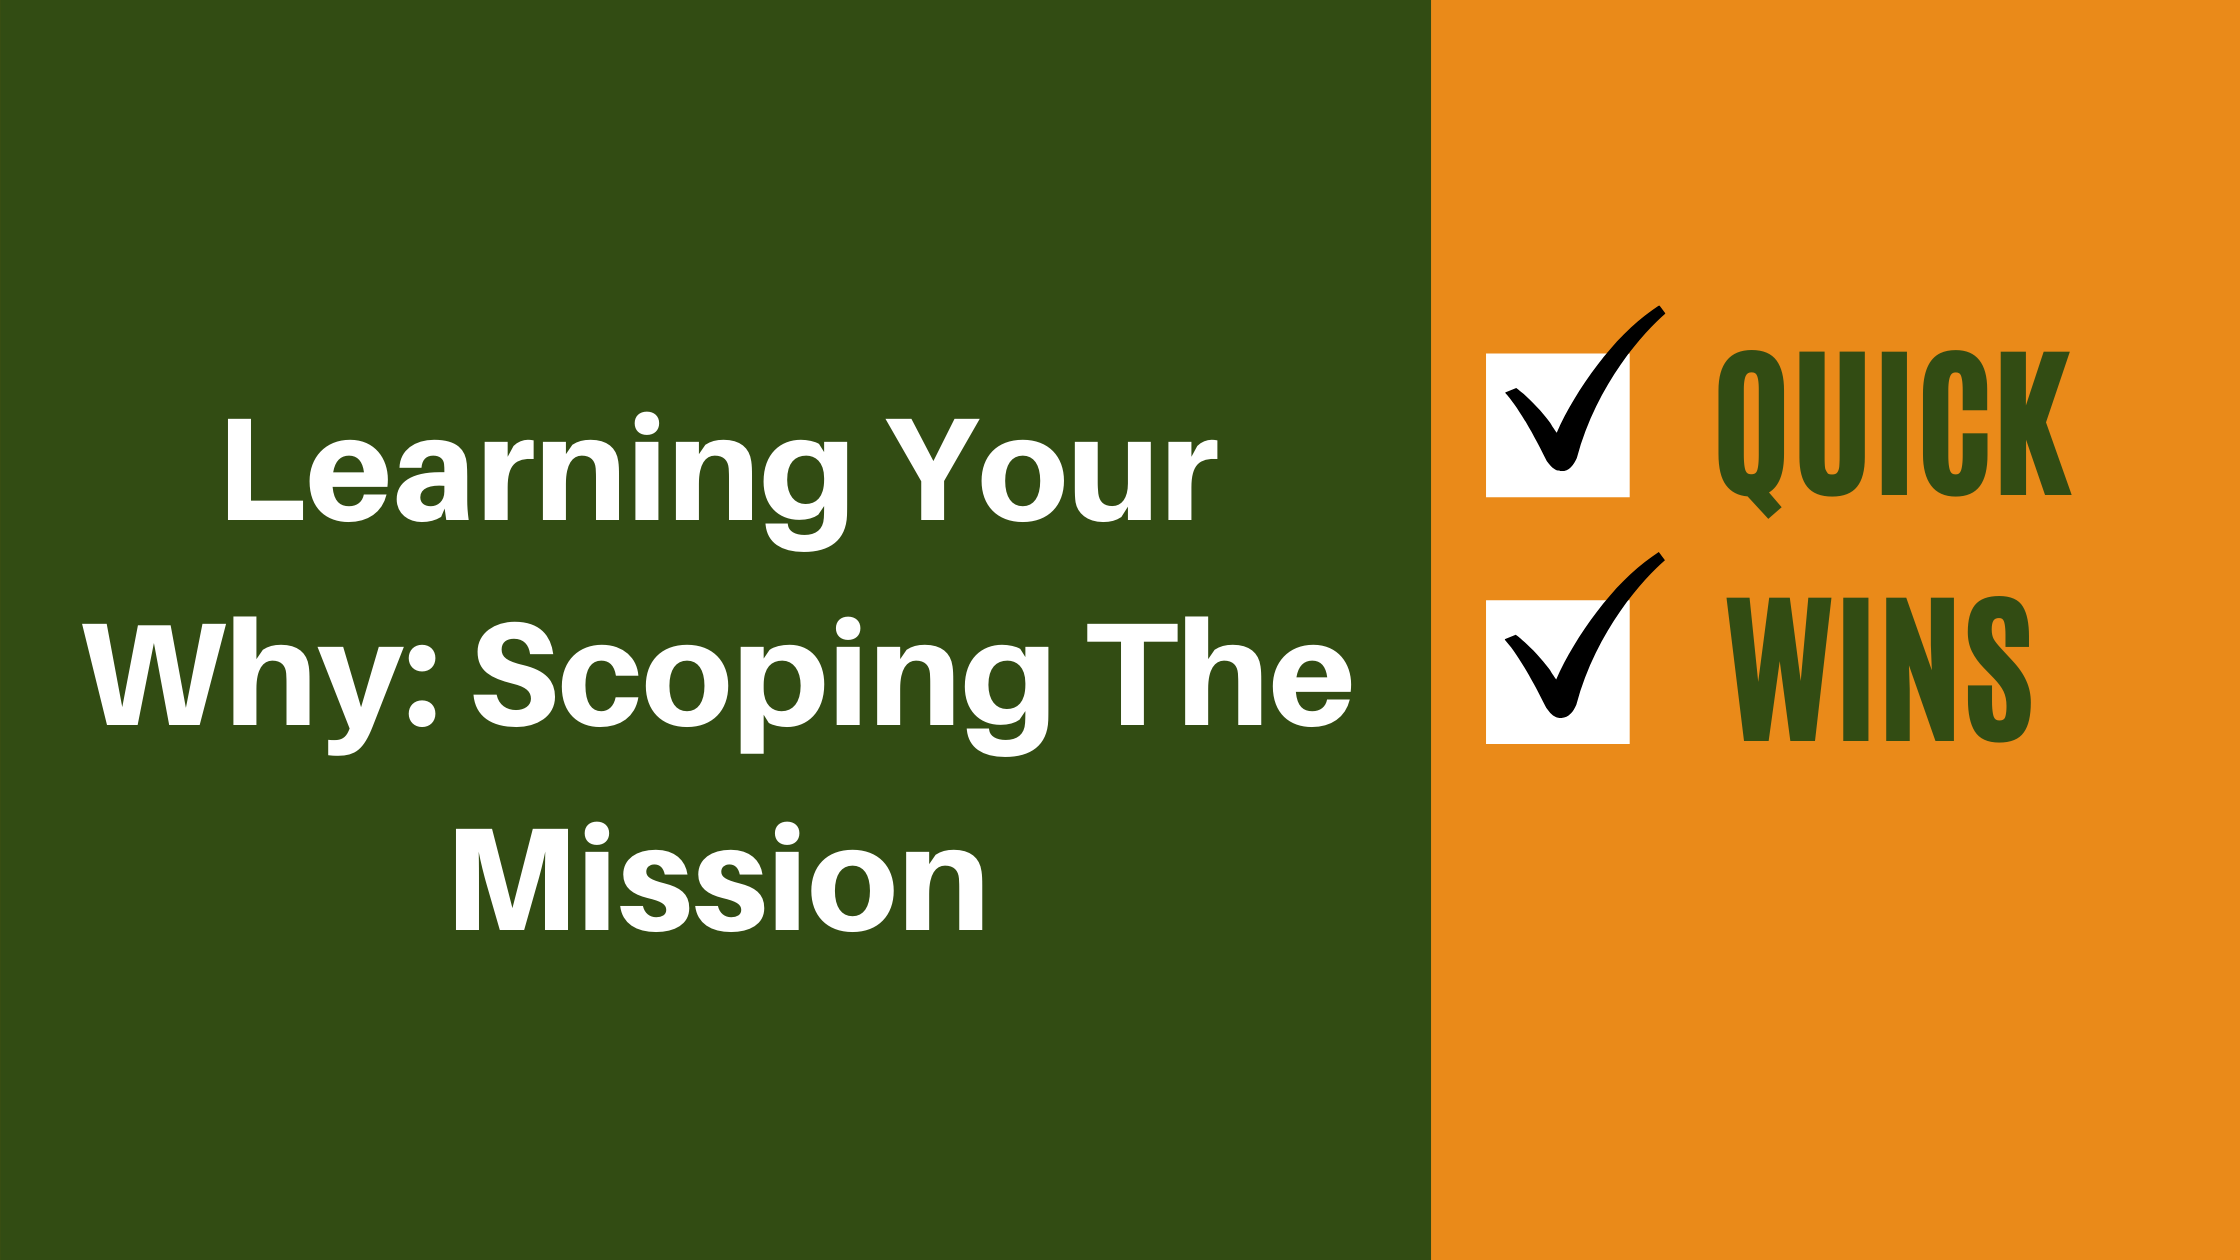 QUICK WINS_ Learning Your Why_ Scoping The Mission